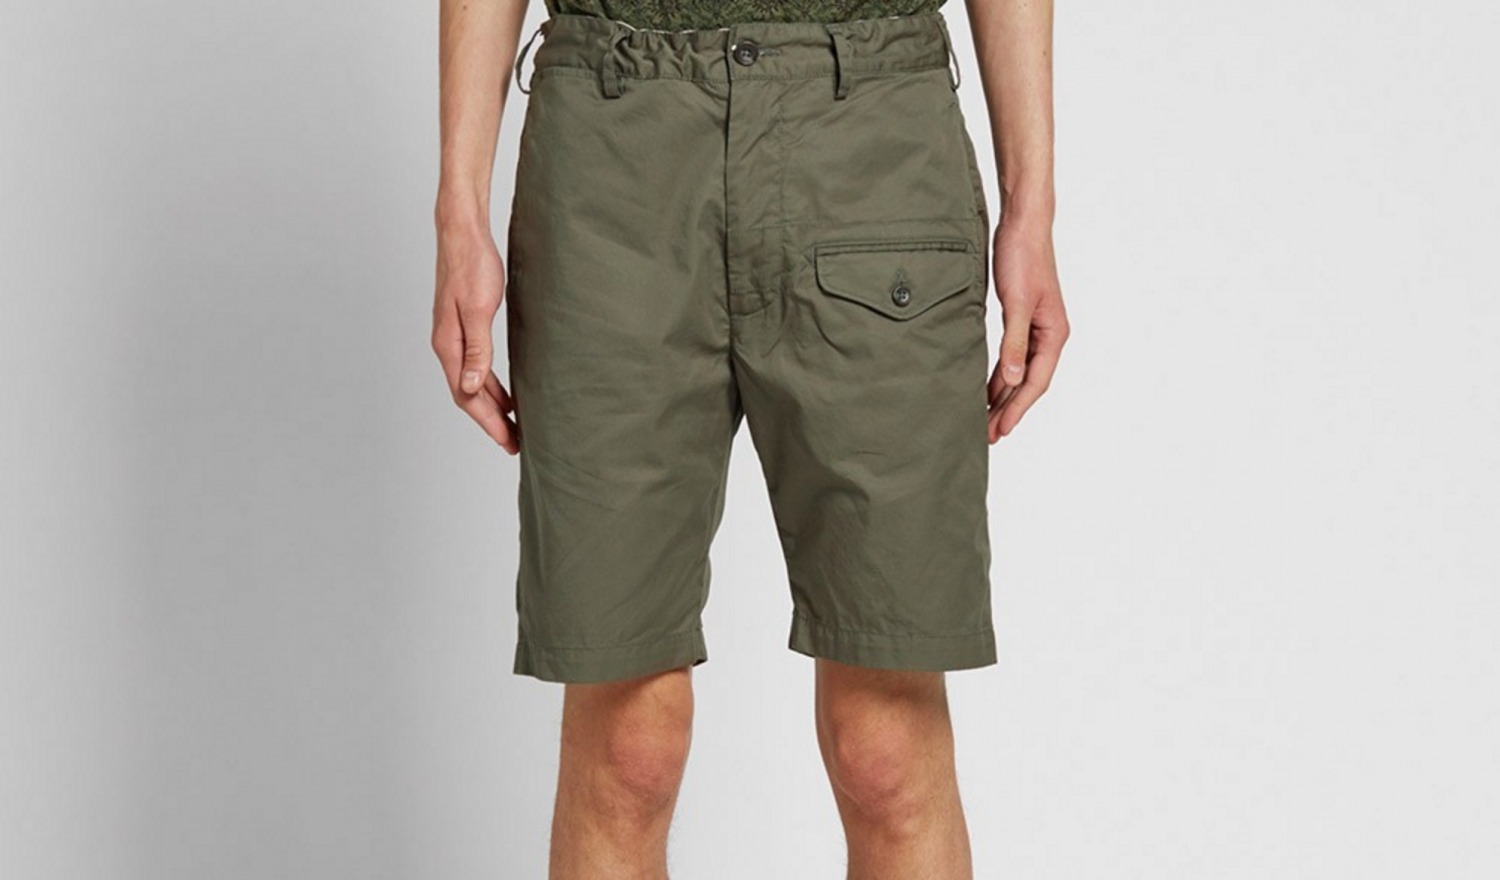 how to wear cargo shorts, cool cargo shorts, updated cargo shorts, cargo shorts 2016, engineered garments